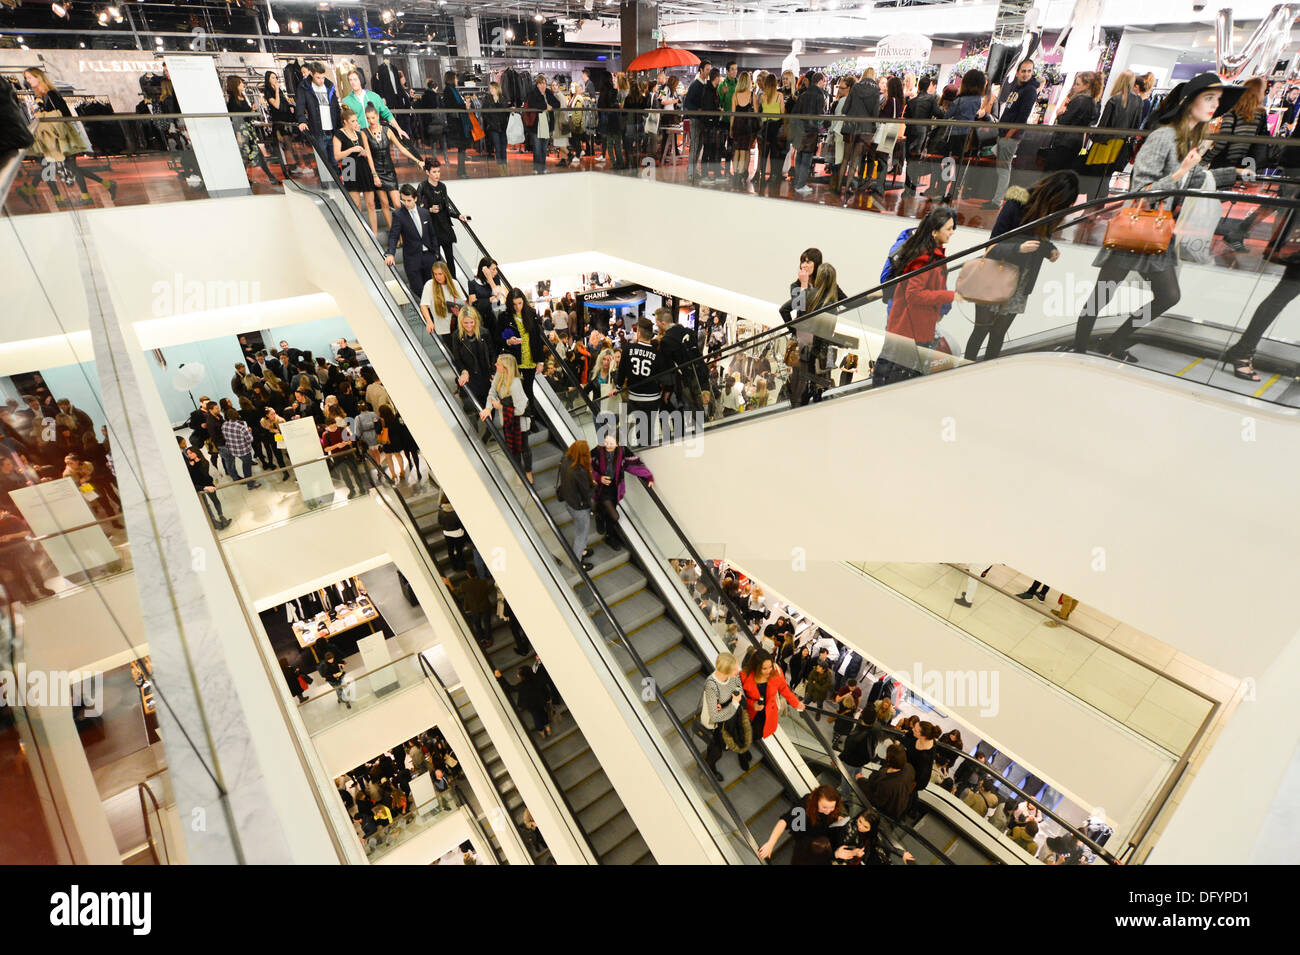 c142de3fdf000 Selfridges Manchester Stock Photos   Selfridges Manchester Stock ...